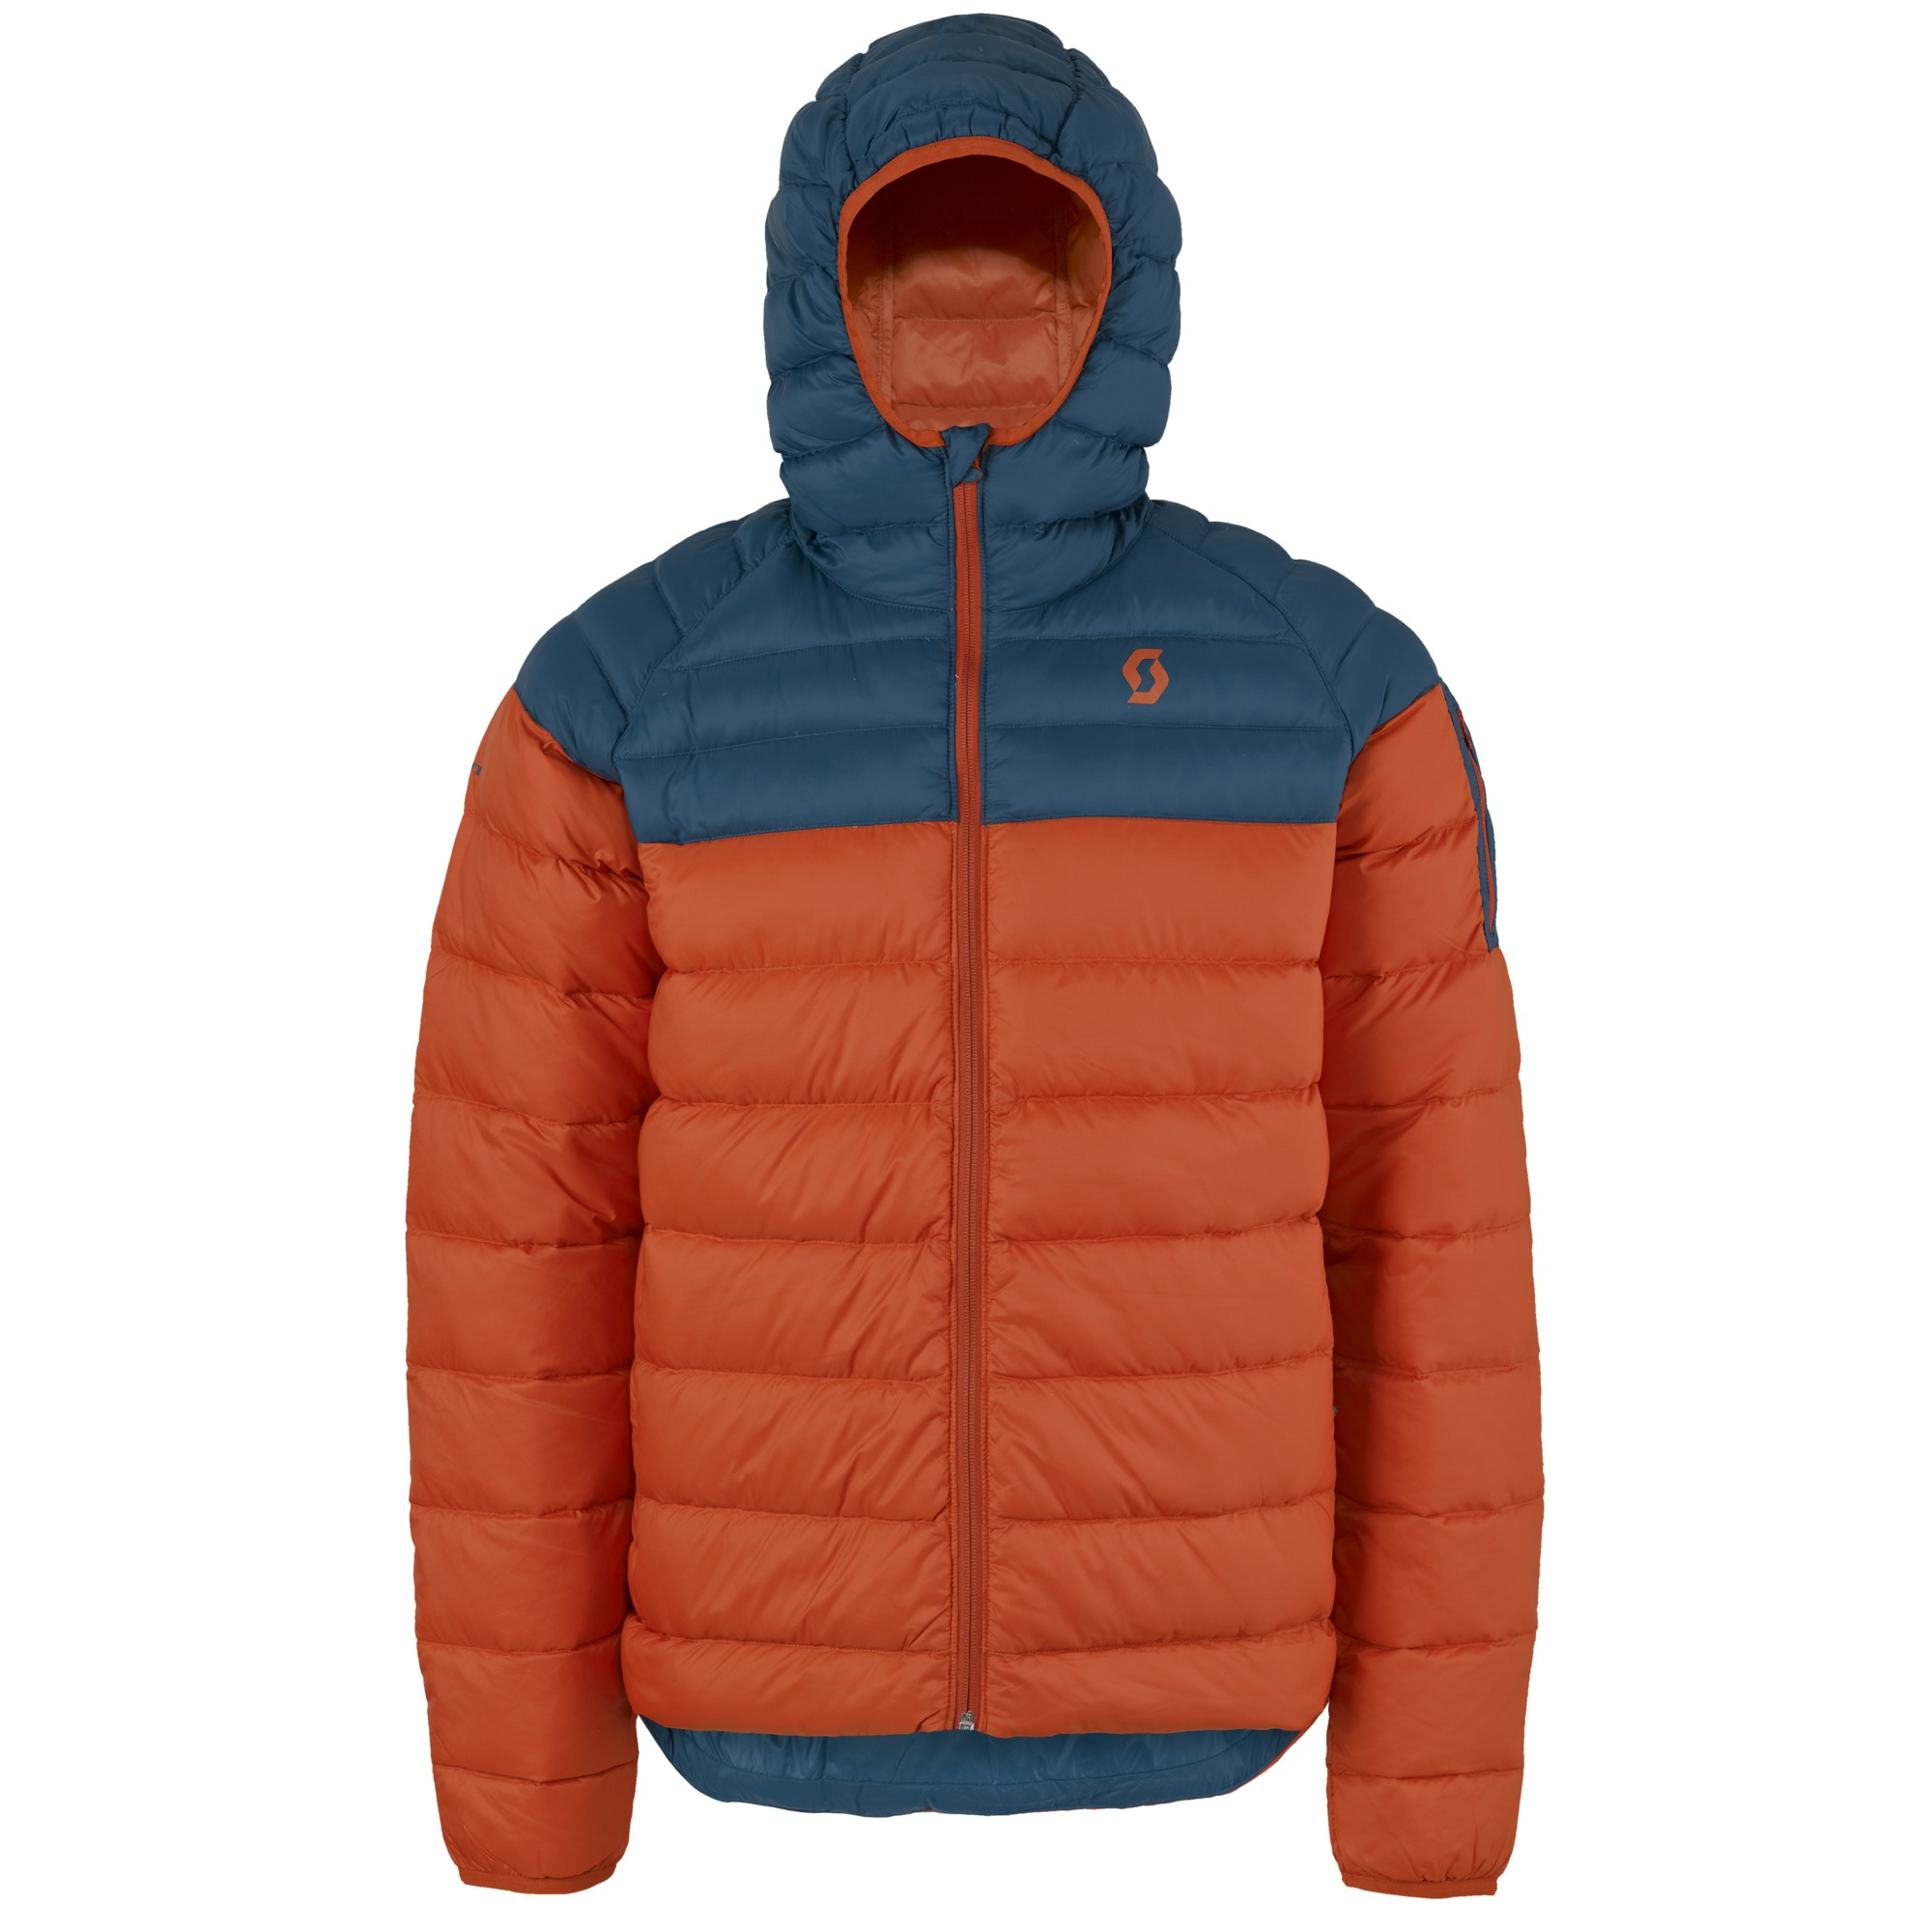 SCOTT Insuloft Down Jacket